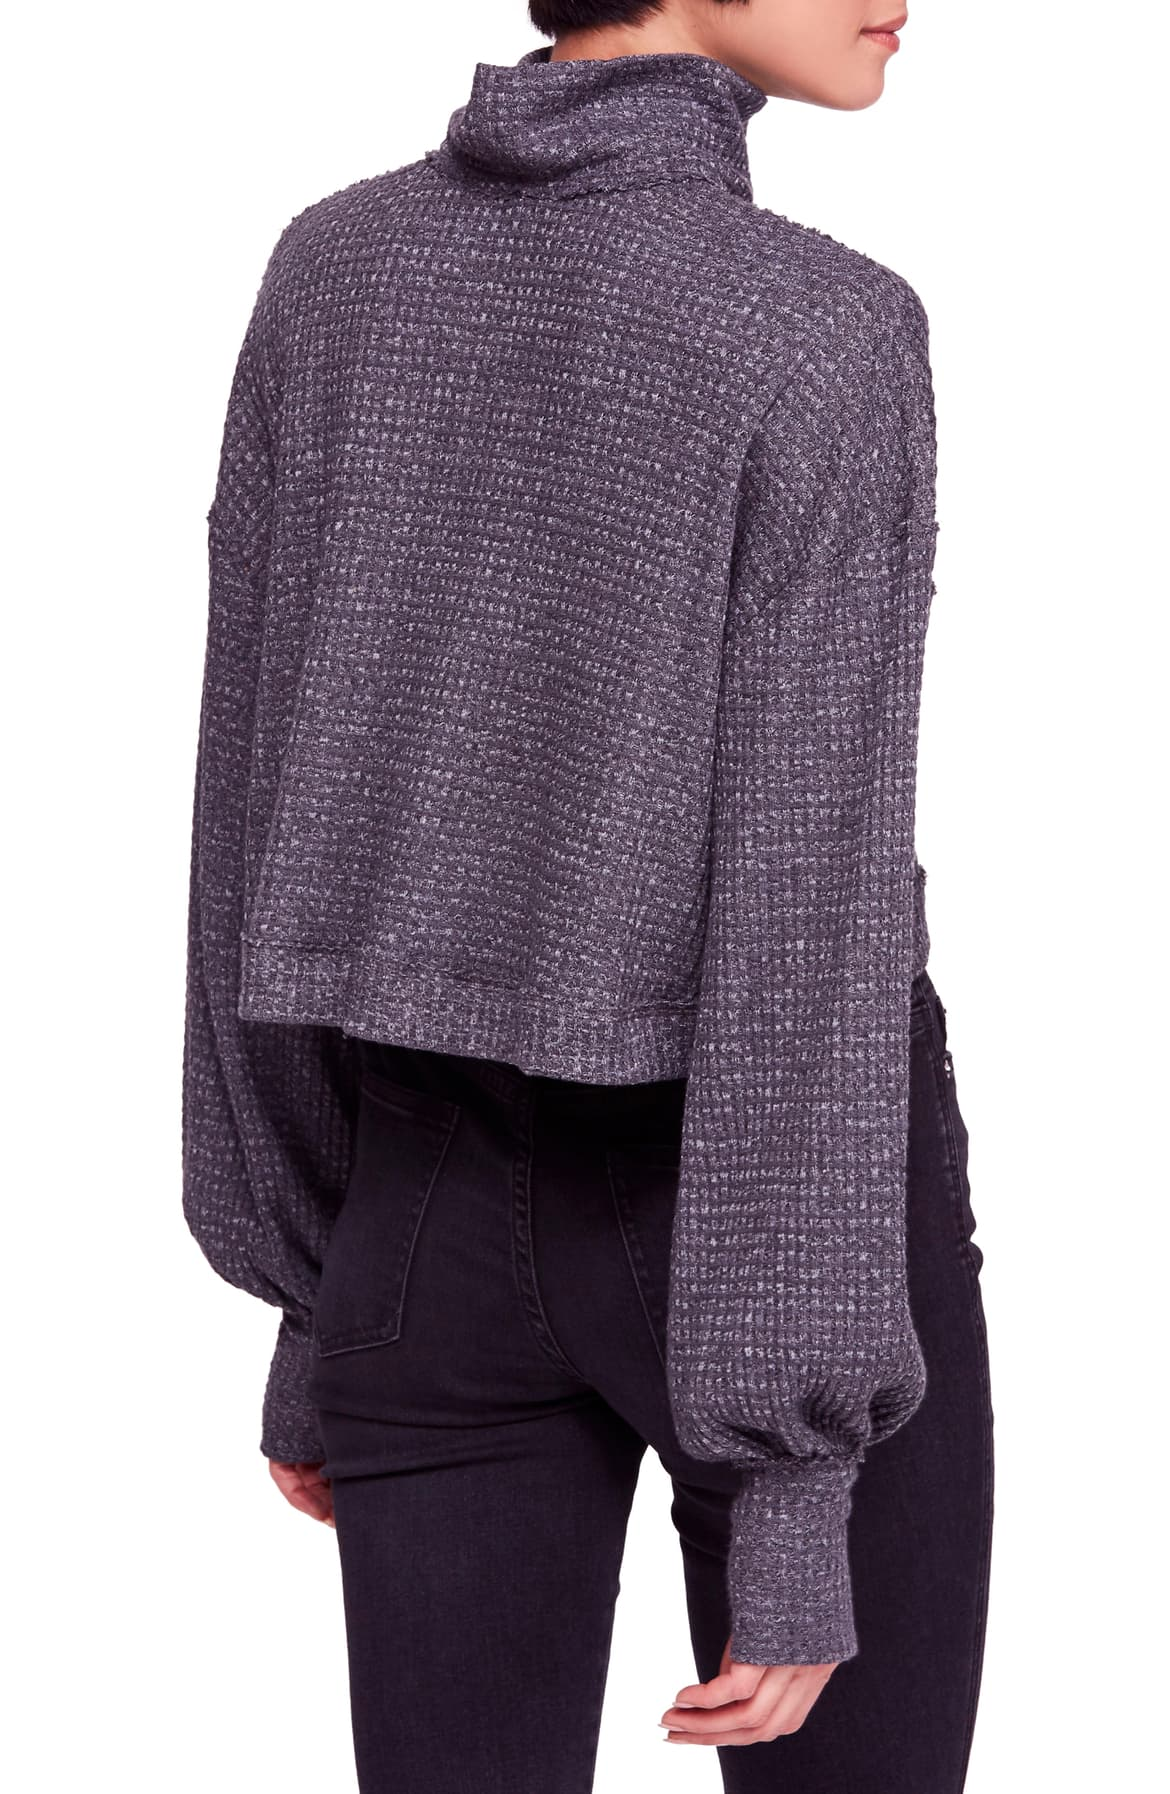 Free People Waffle-Knit Cropped Turtleneck Gray L - Gear Relapse